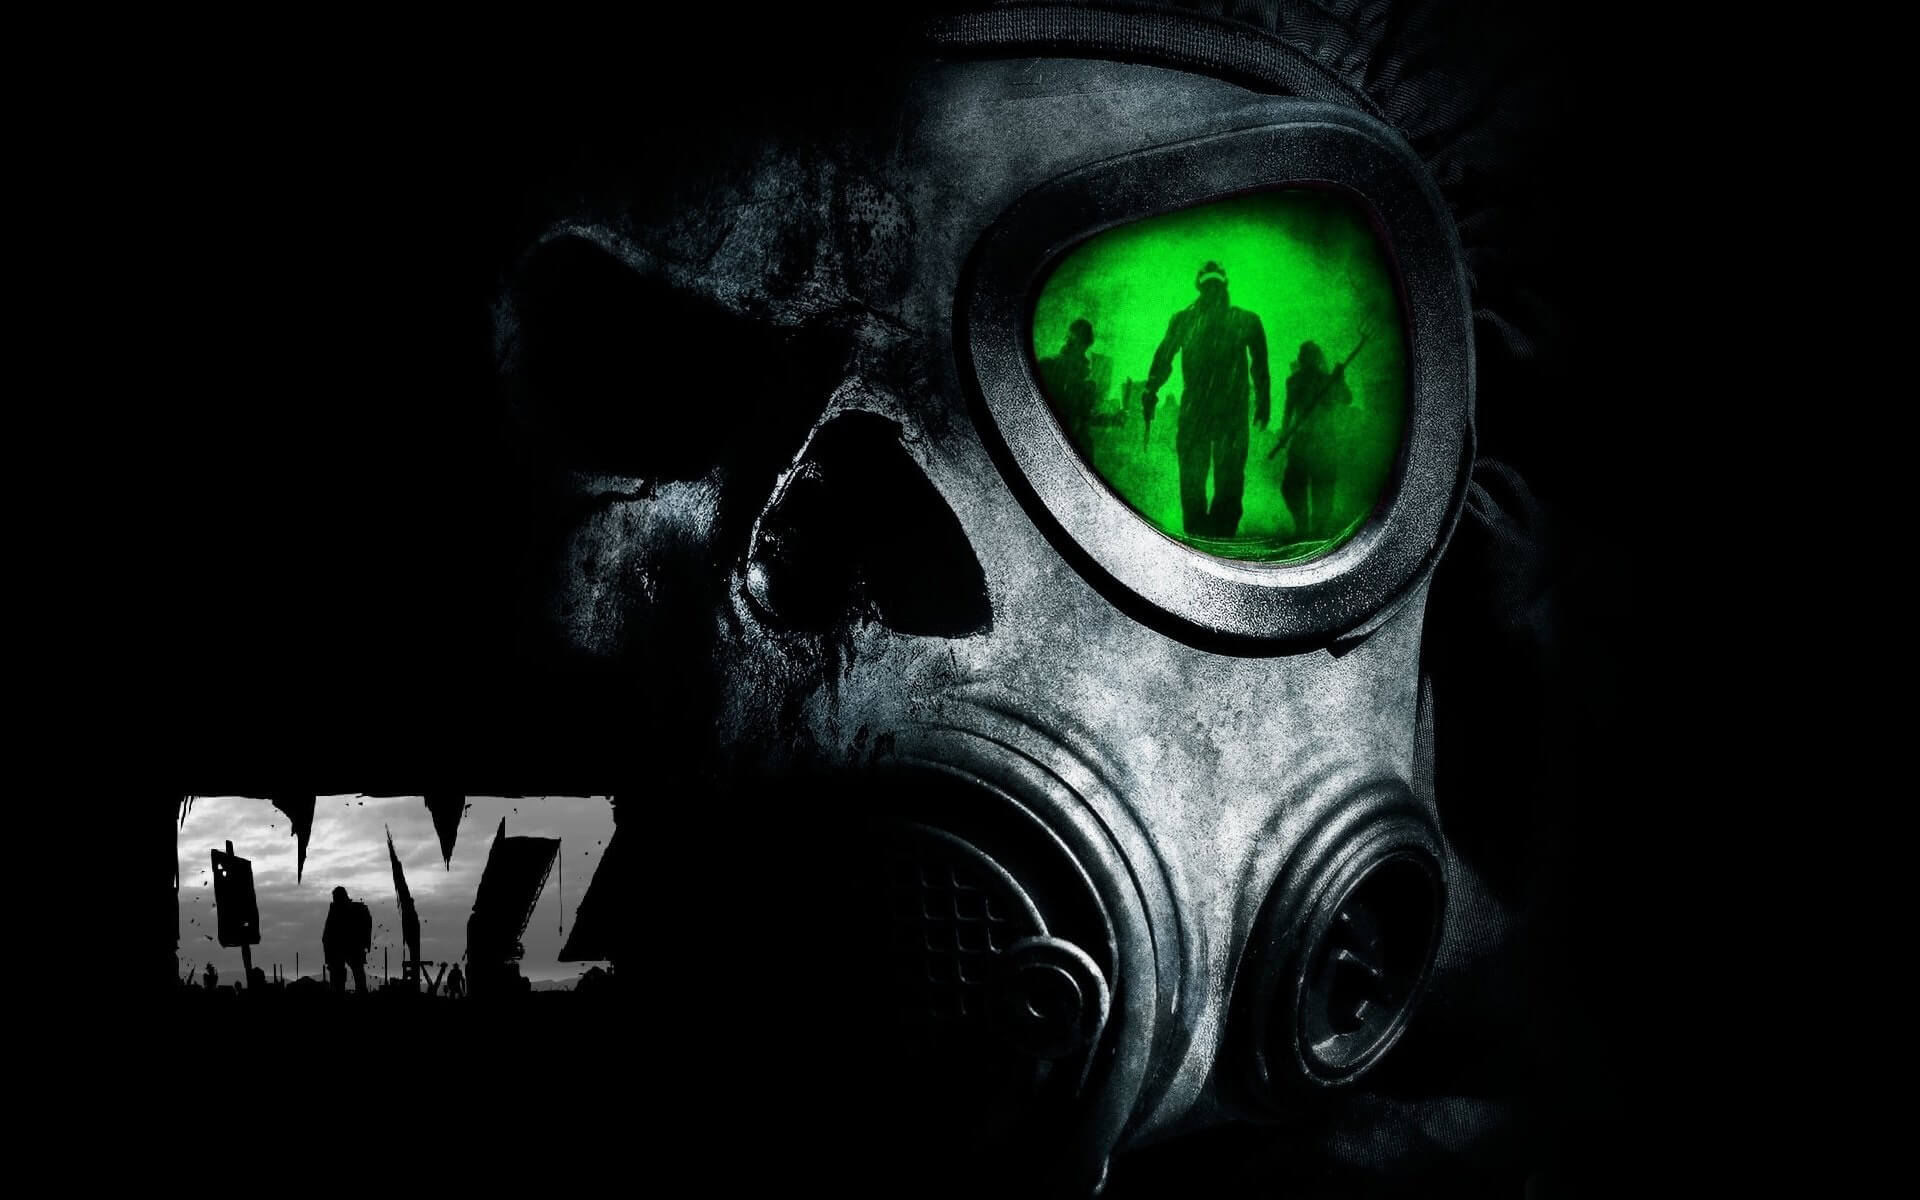 dayz wallpaper download